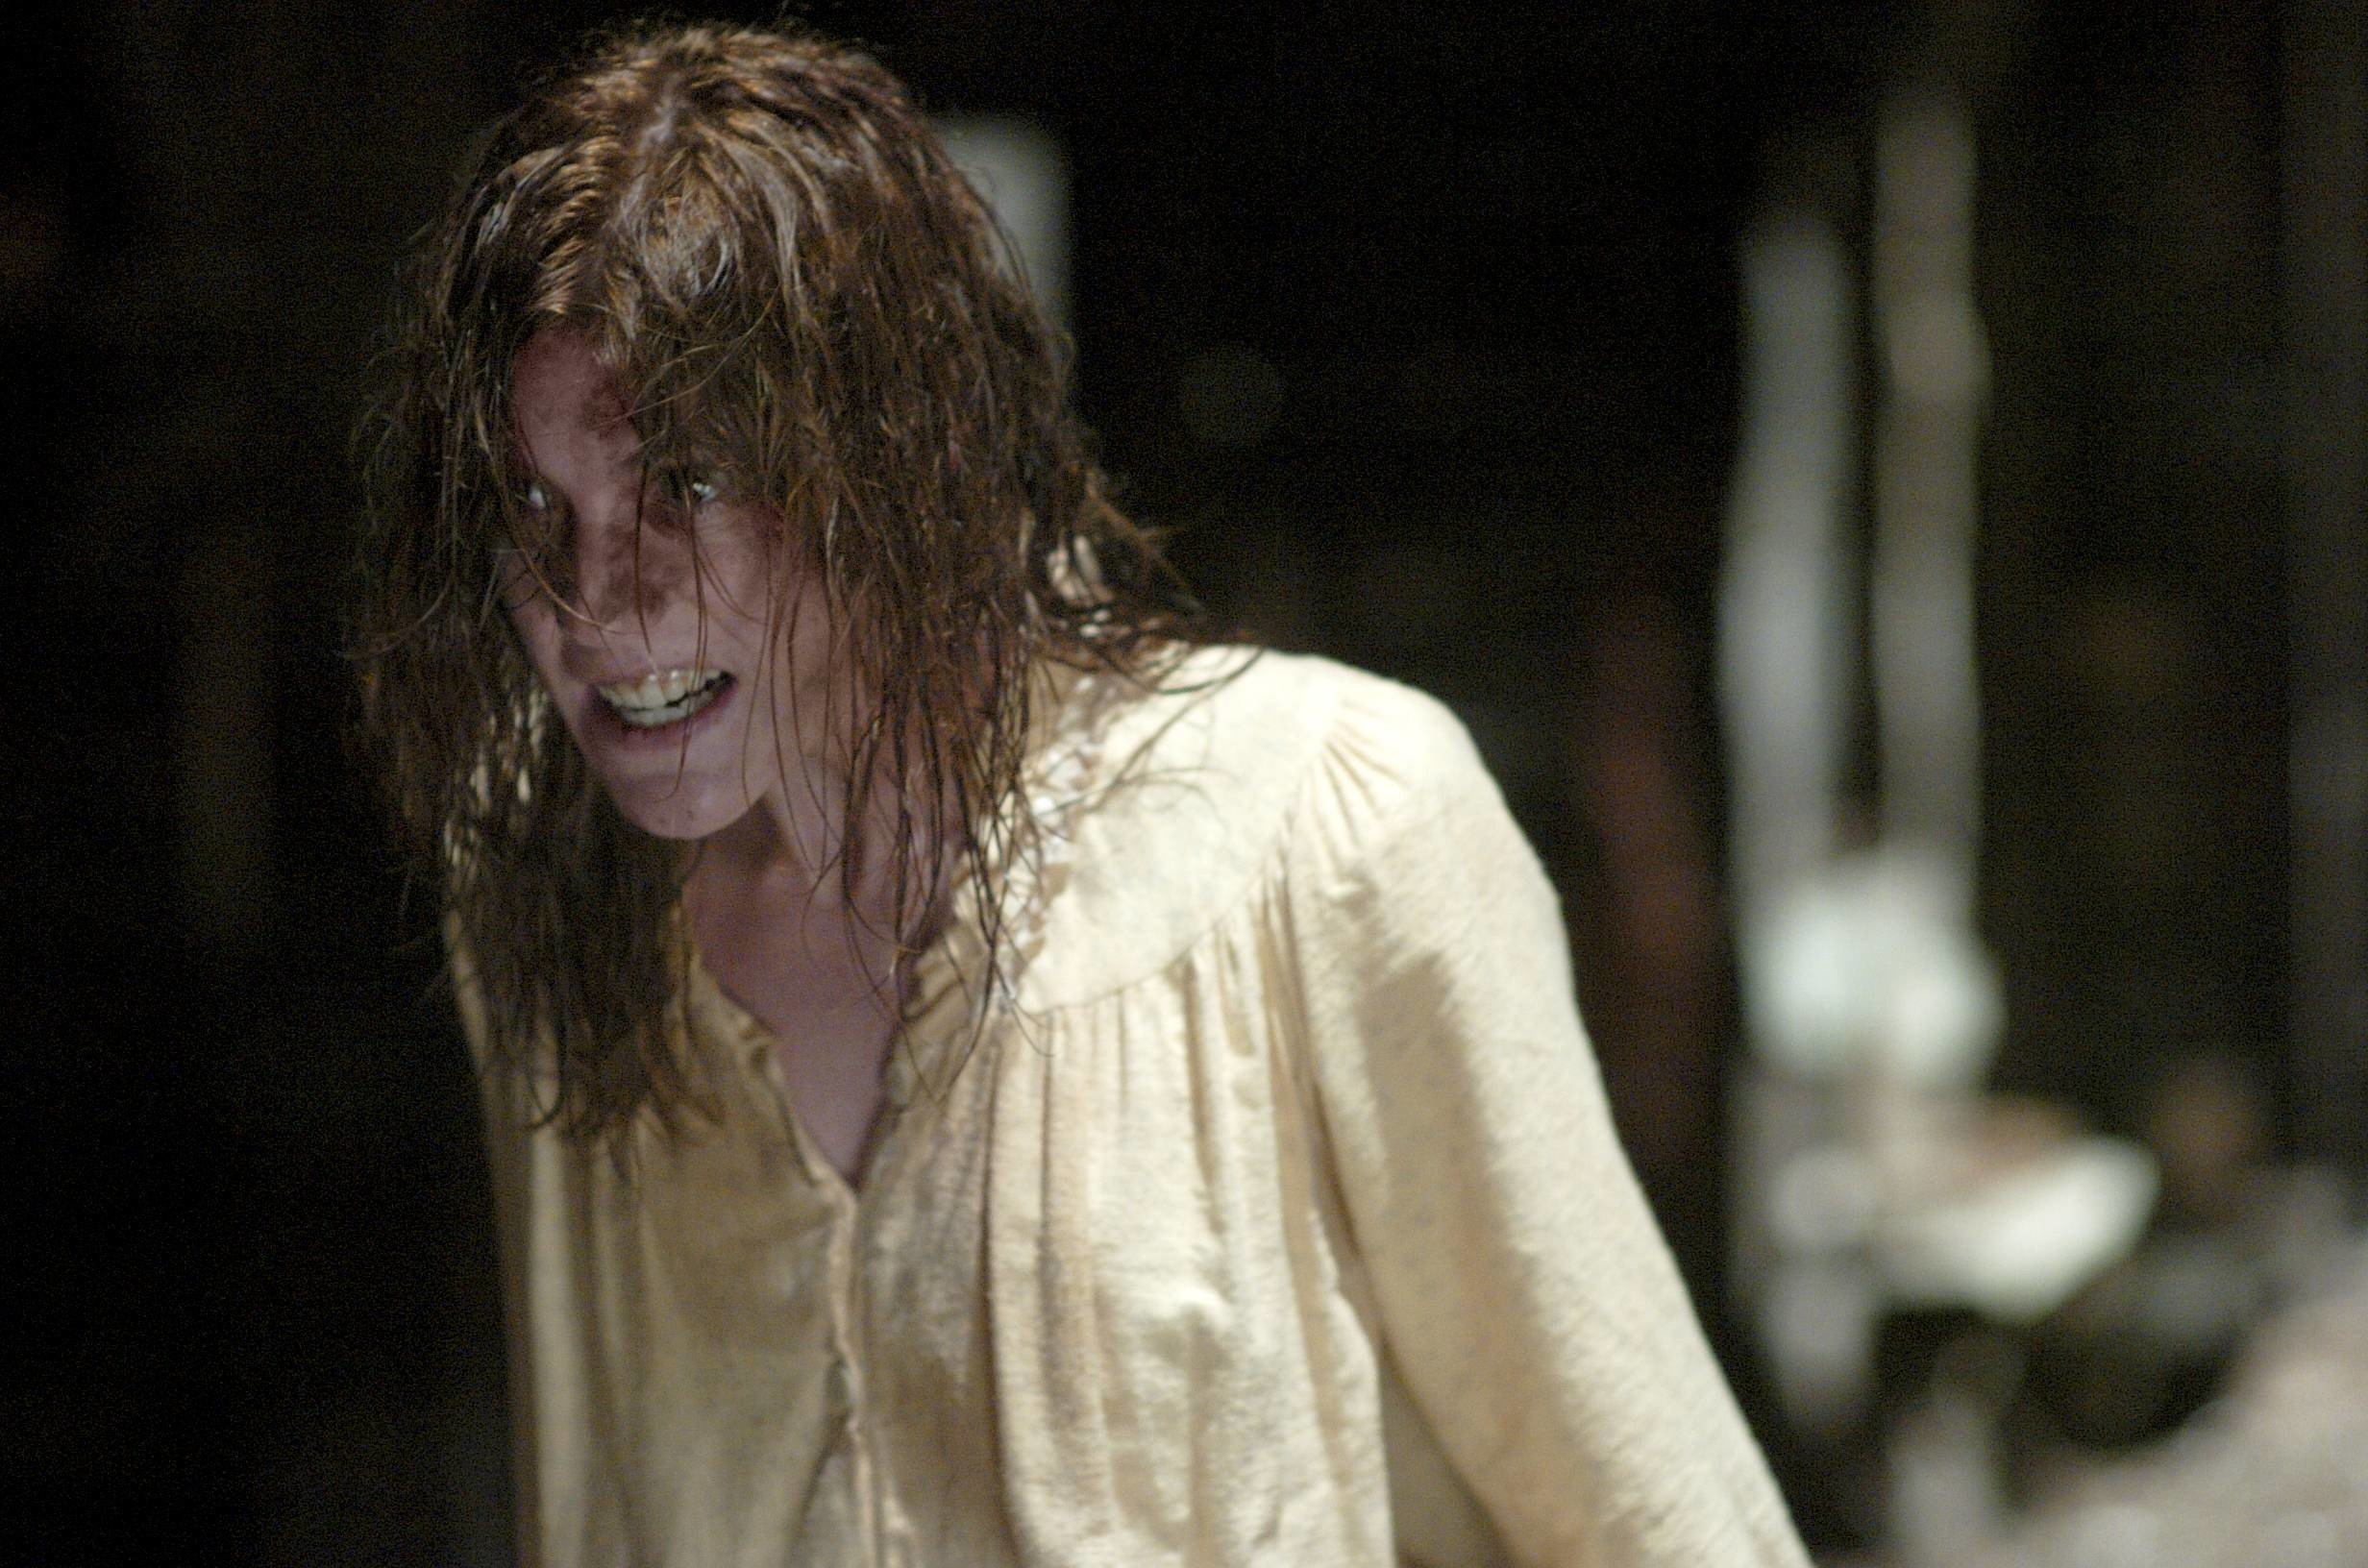 Res: 2464x1632, The Exorcism Of Emily Rose HD Wallpaper | Background Image |  |  ID:445502 - Wallpaper Abyss